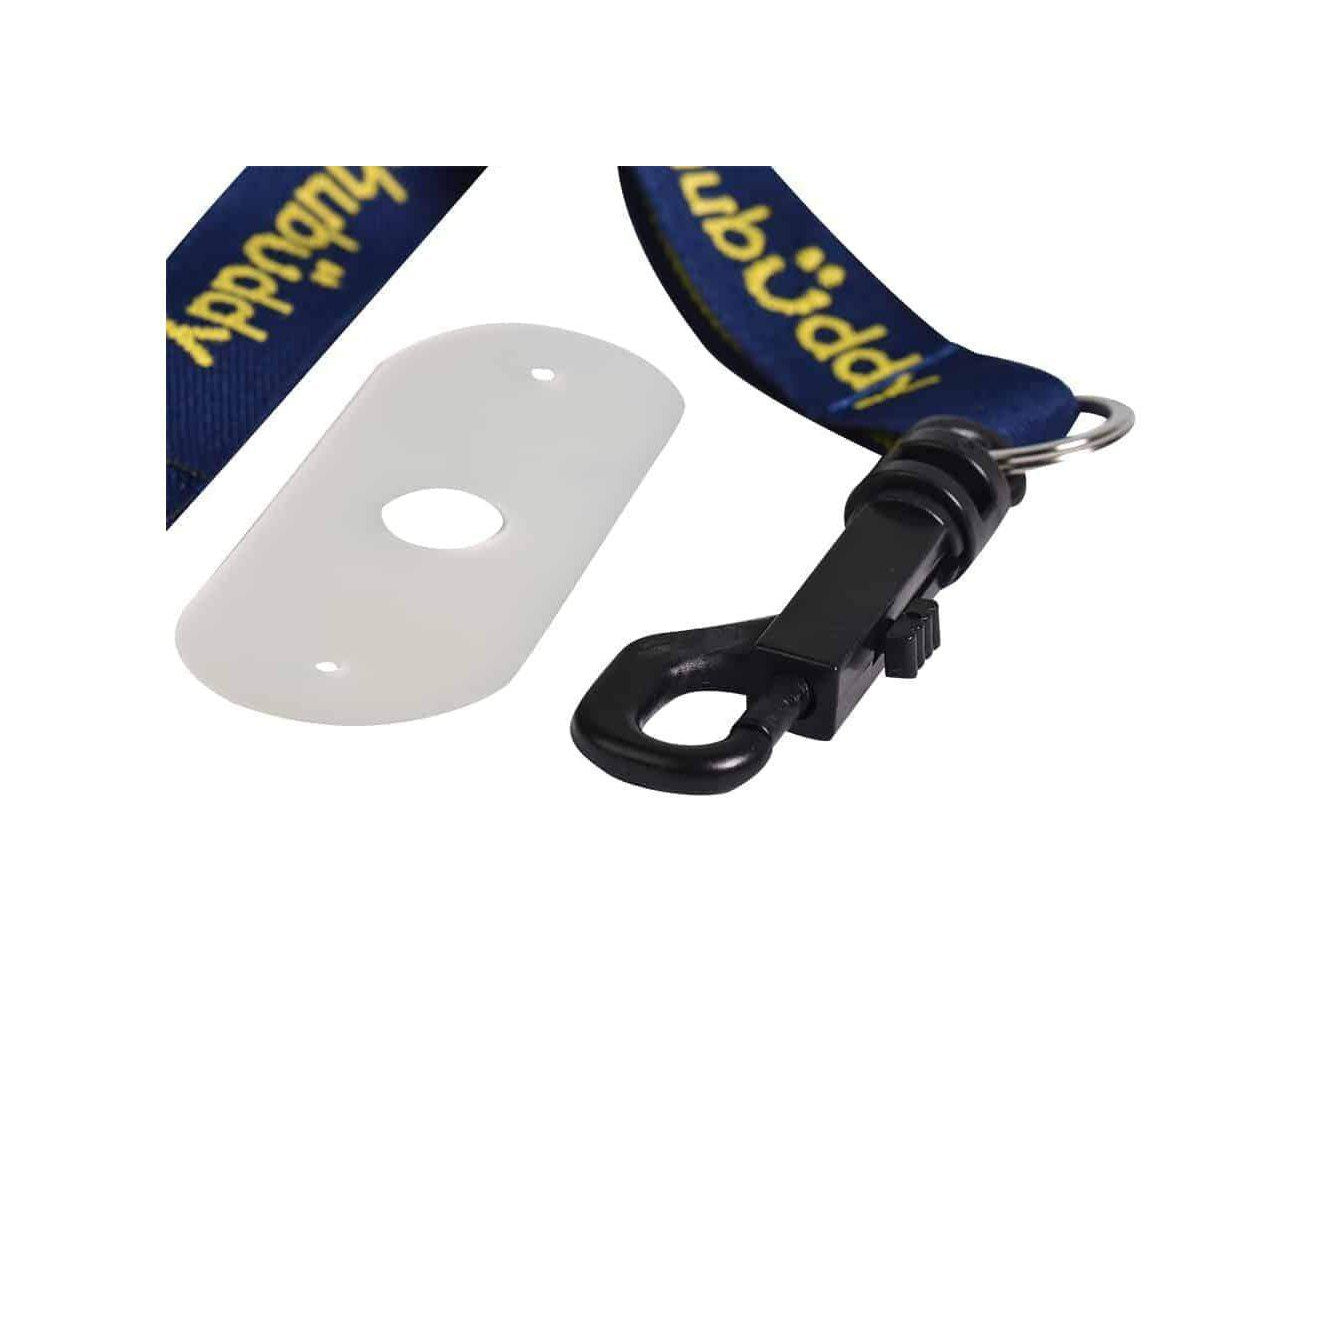 Chew Holder Embroidered Gold  with Grip Stixx* *Reg Mark Sensory University